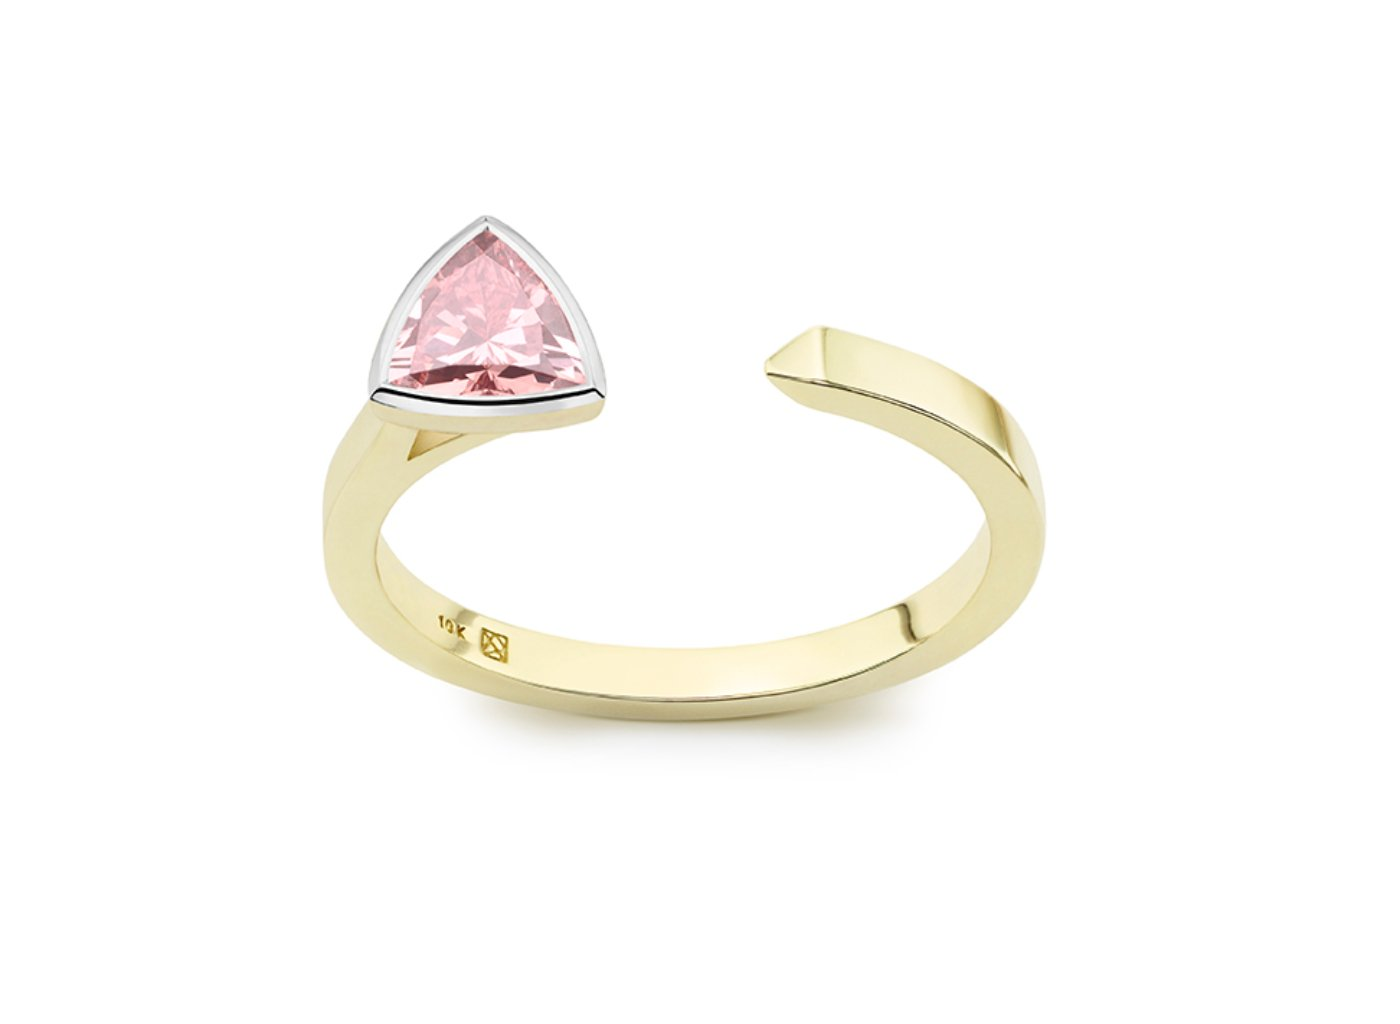 Front view of Trillion open top 3/8 carat ring with pink diamond